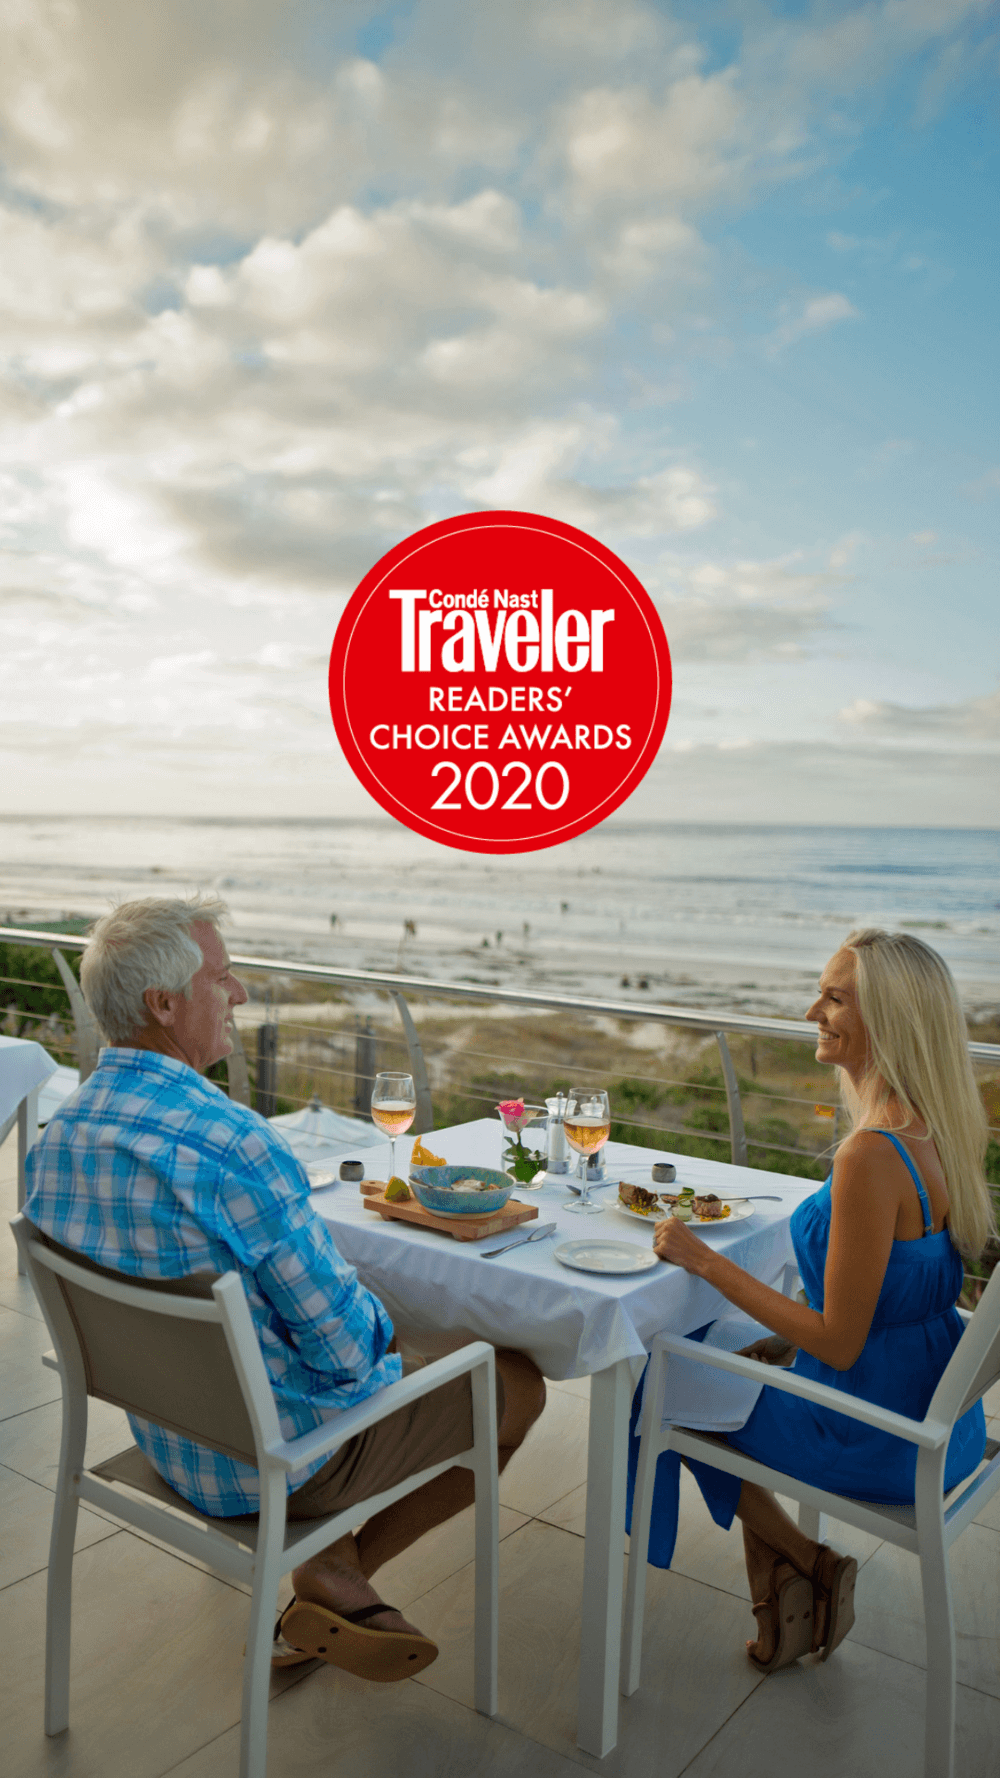 The Last Word Long Beach has been voted as the #2 top hotel in Cape Town by the discerning Condé Nast Traveler Readers' Choice Awards